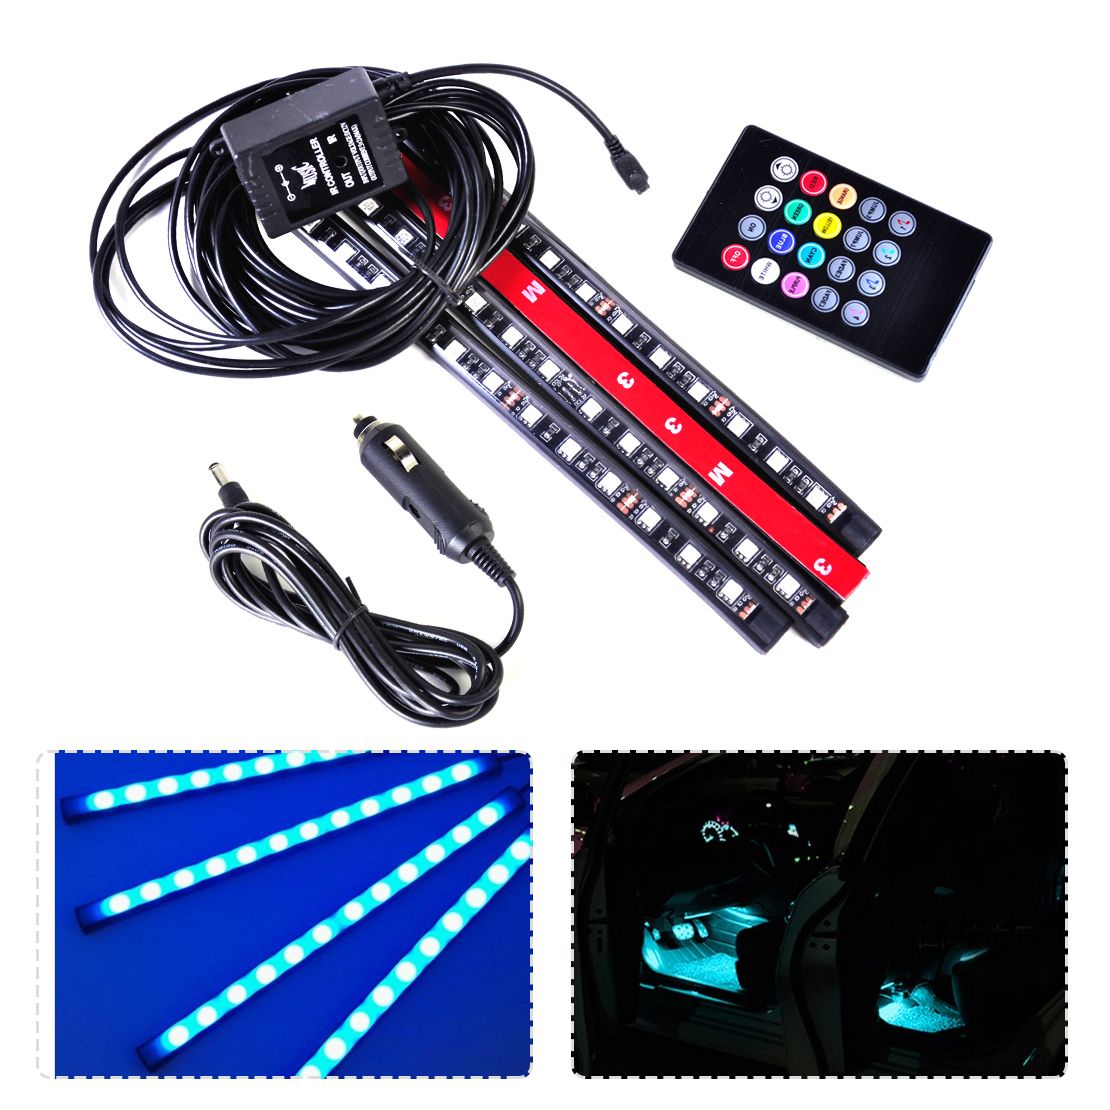 New 12v Led Strip Light Car Interior Atmosphere Light Music Sound 8 Colors Multi Color Decoration Lamp W 12v Led Strip Lights Led Strip Lighting Strip Lighting